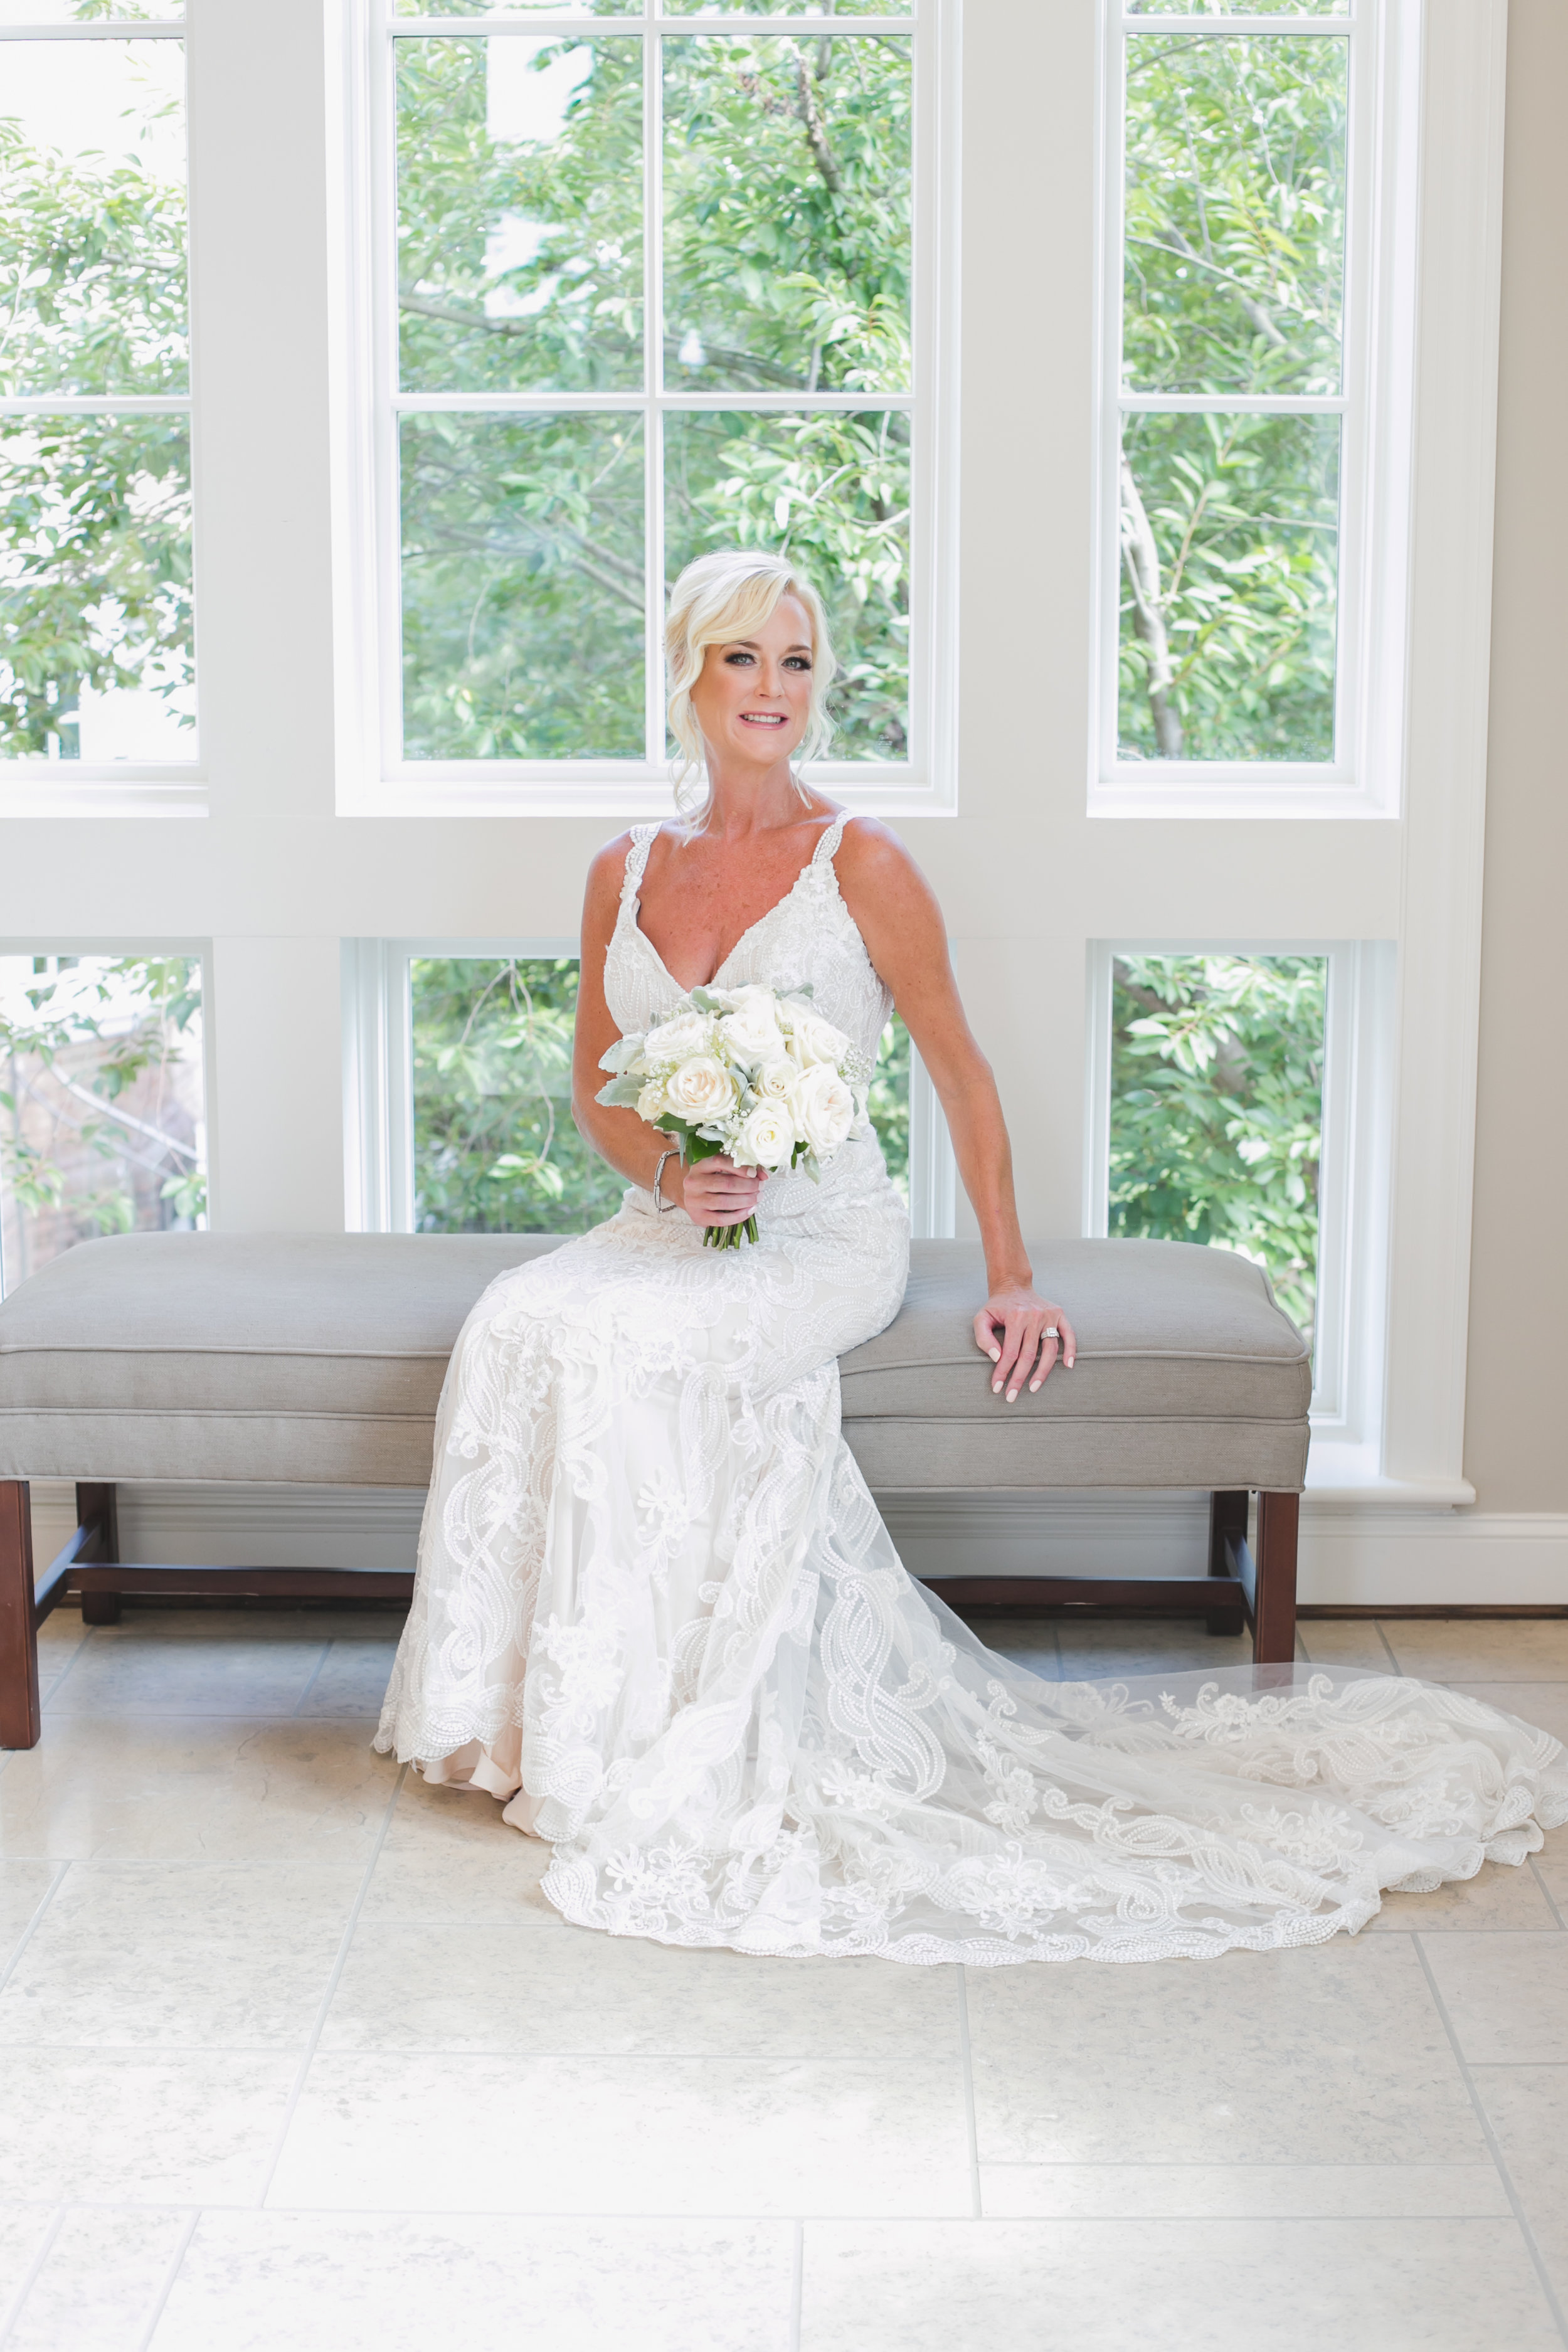 Brentwood Country Club - Carrie & Greg - Brentwood TN